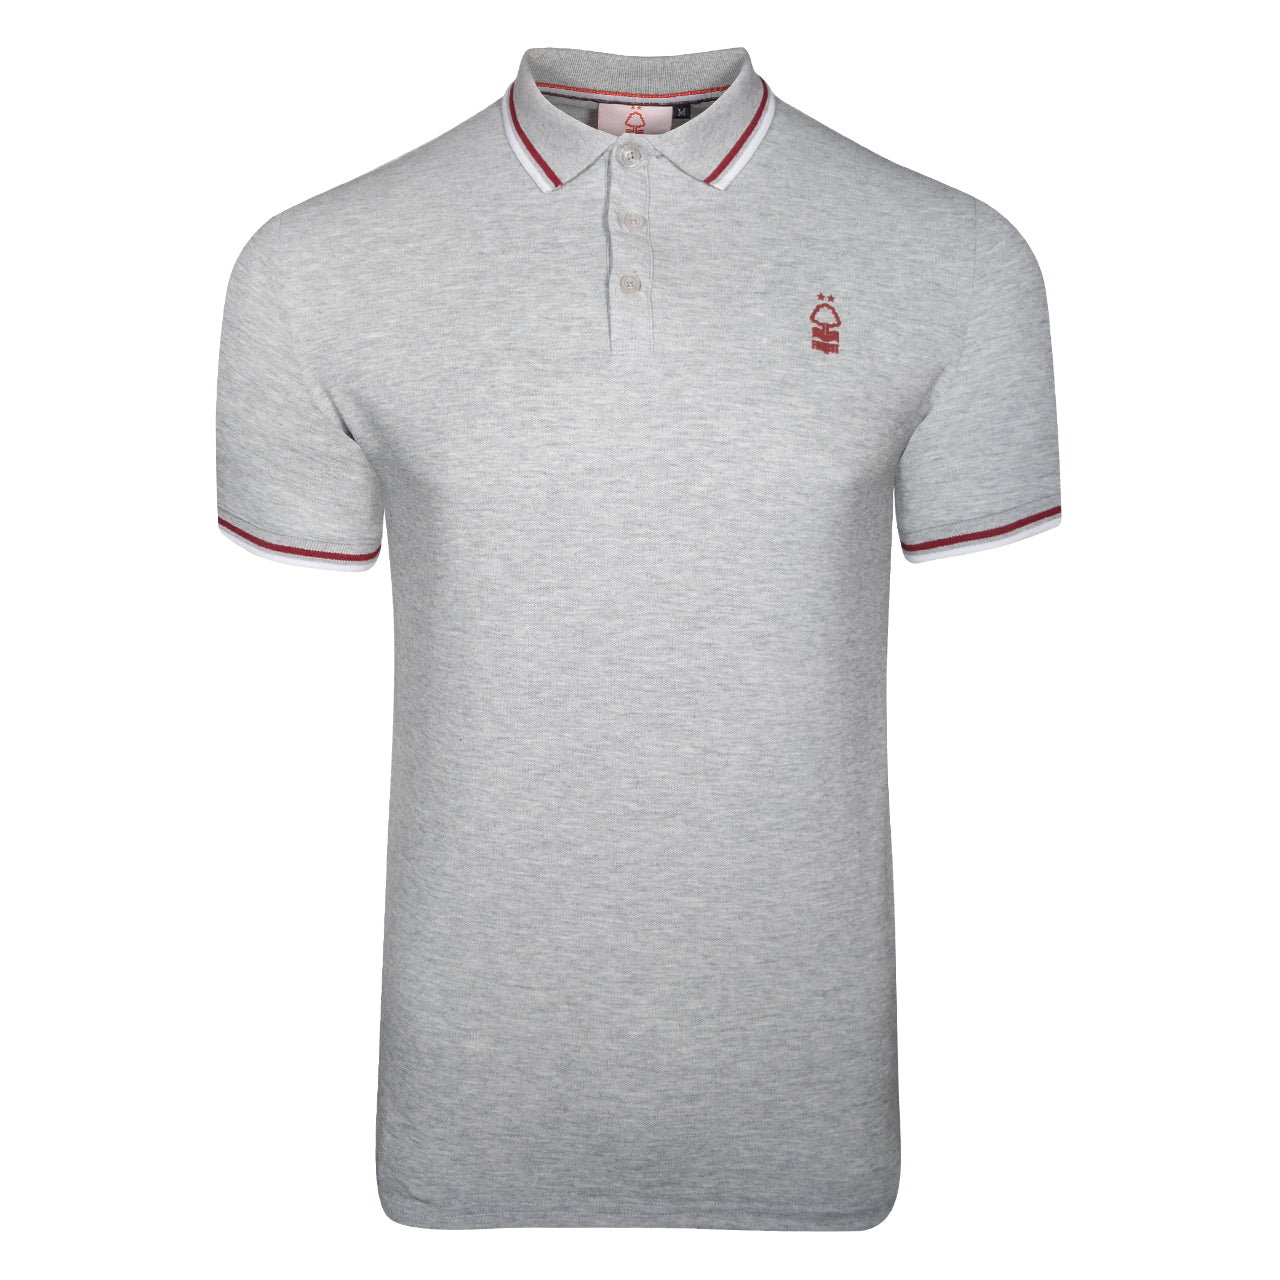 NFFC Mens Grey Raised Rubber Crest Polo